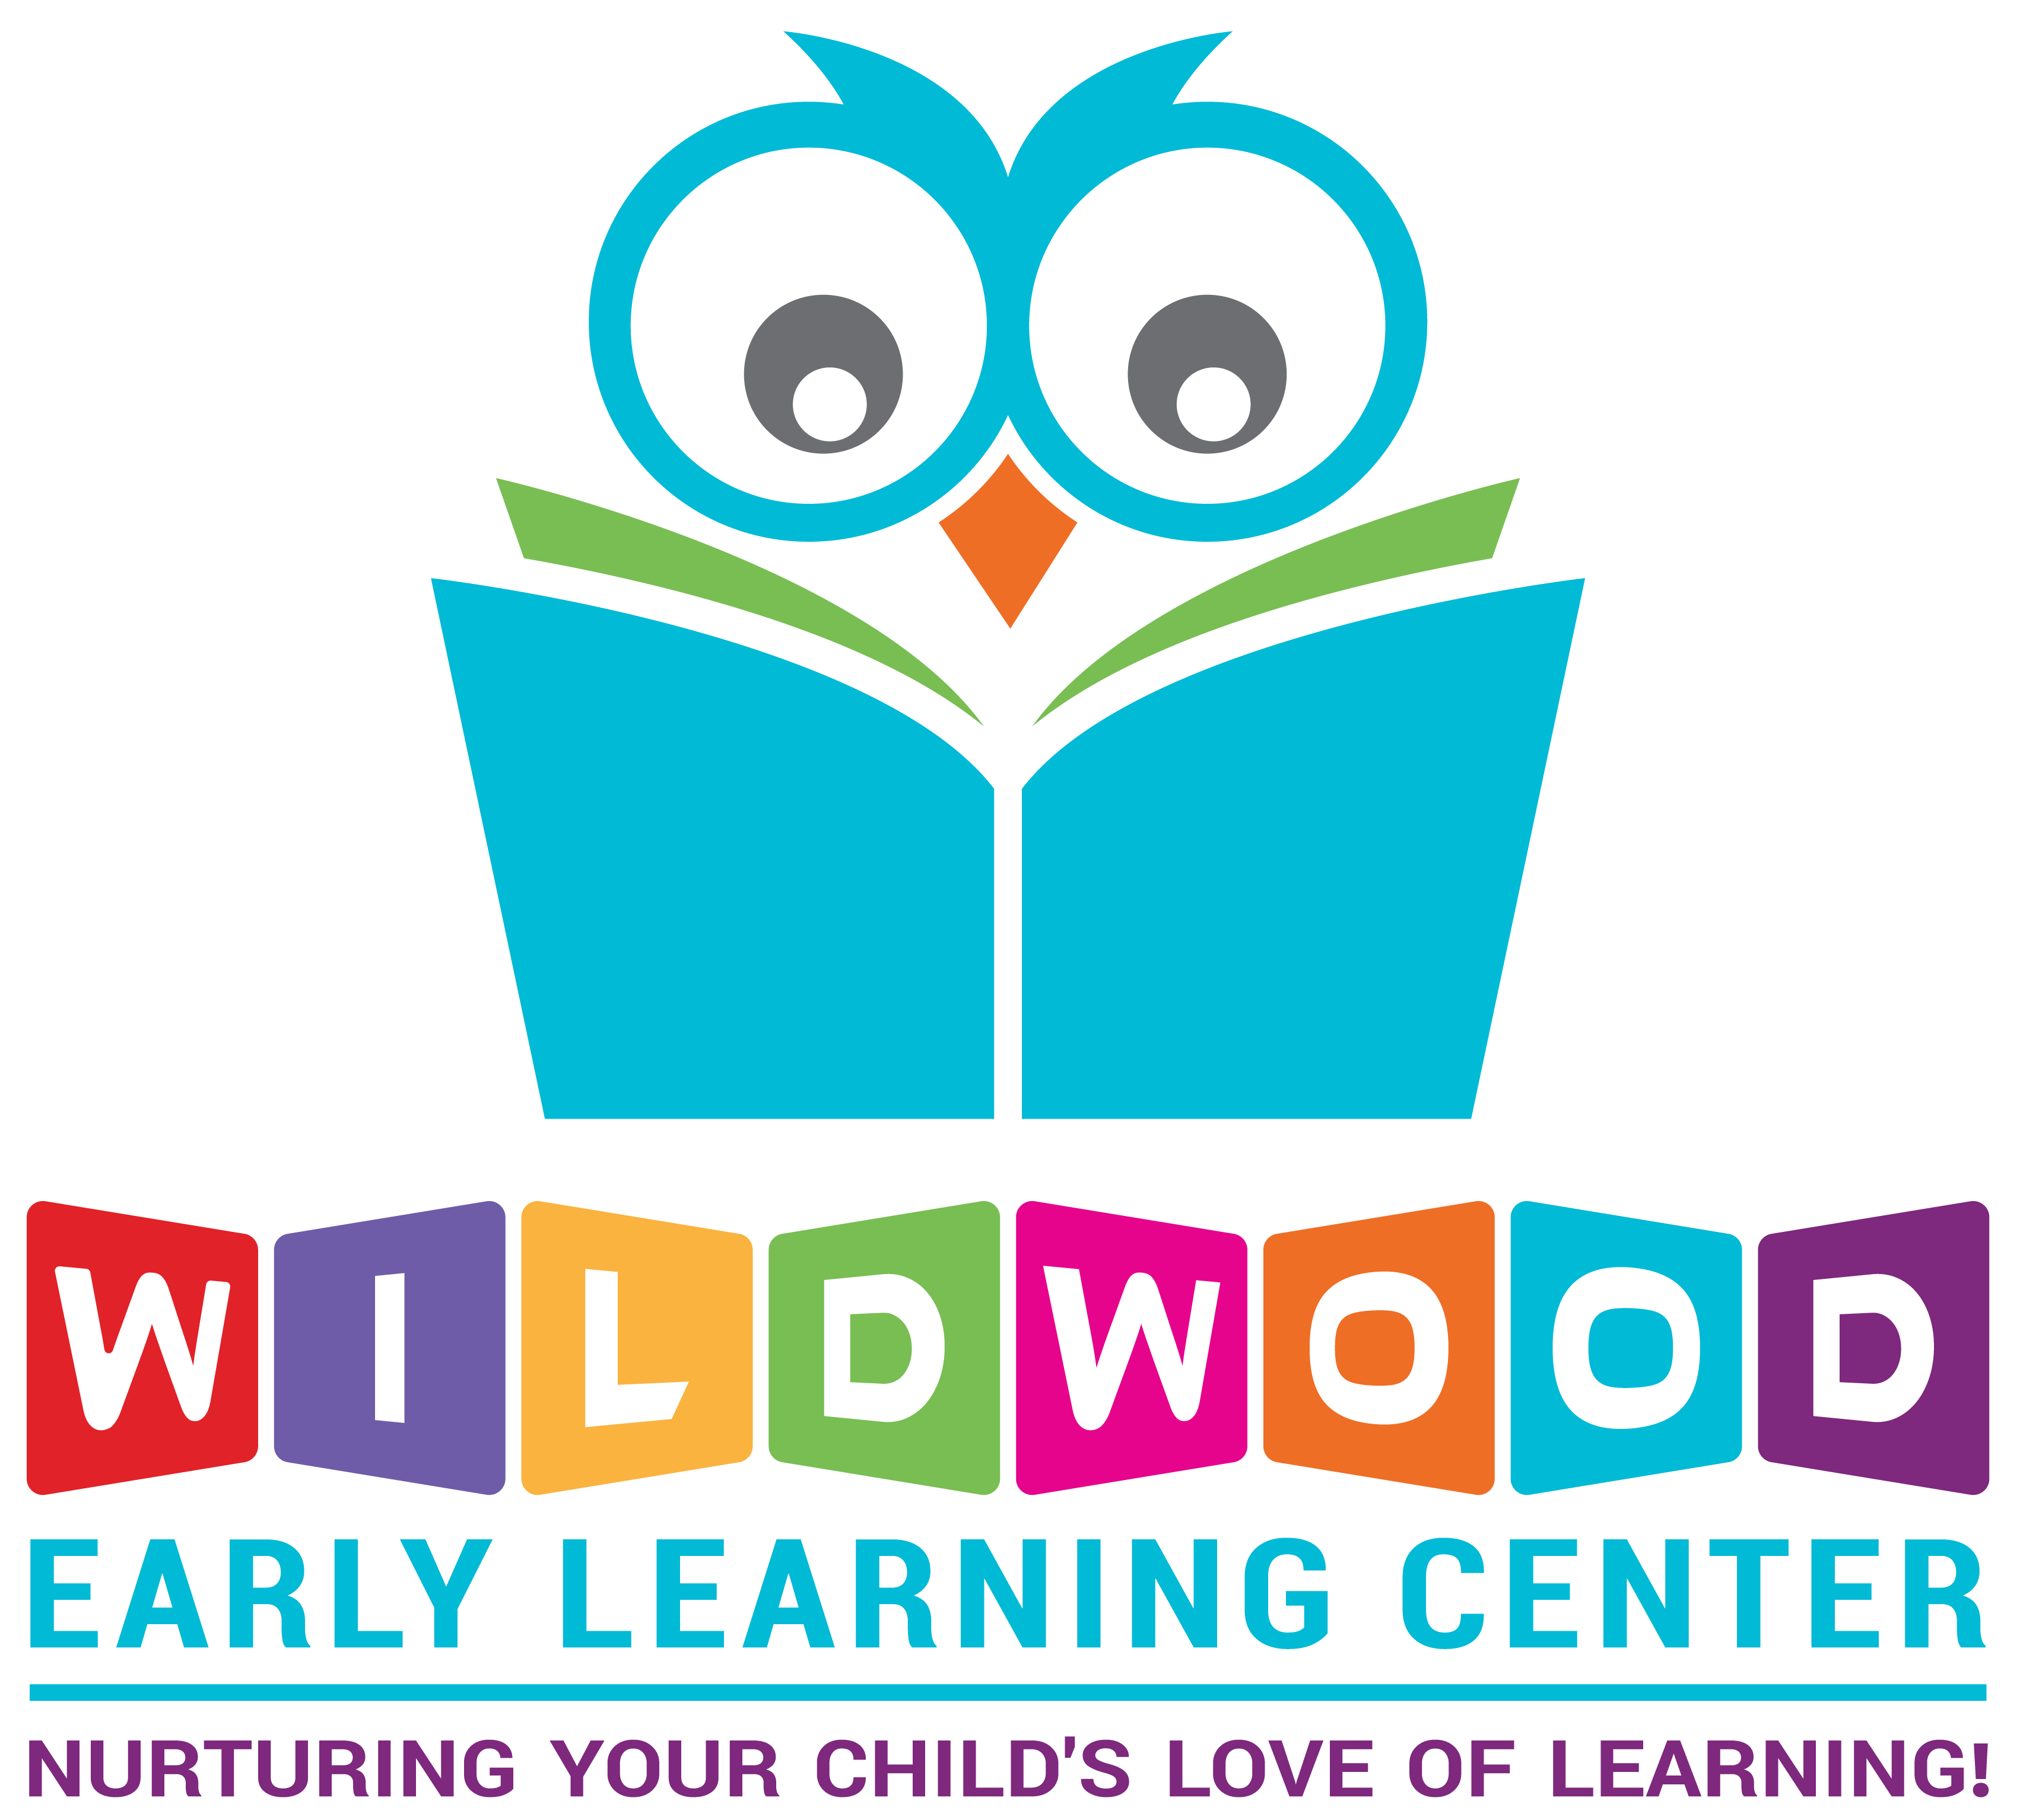 Wildwood Early Learning Center